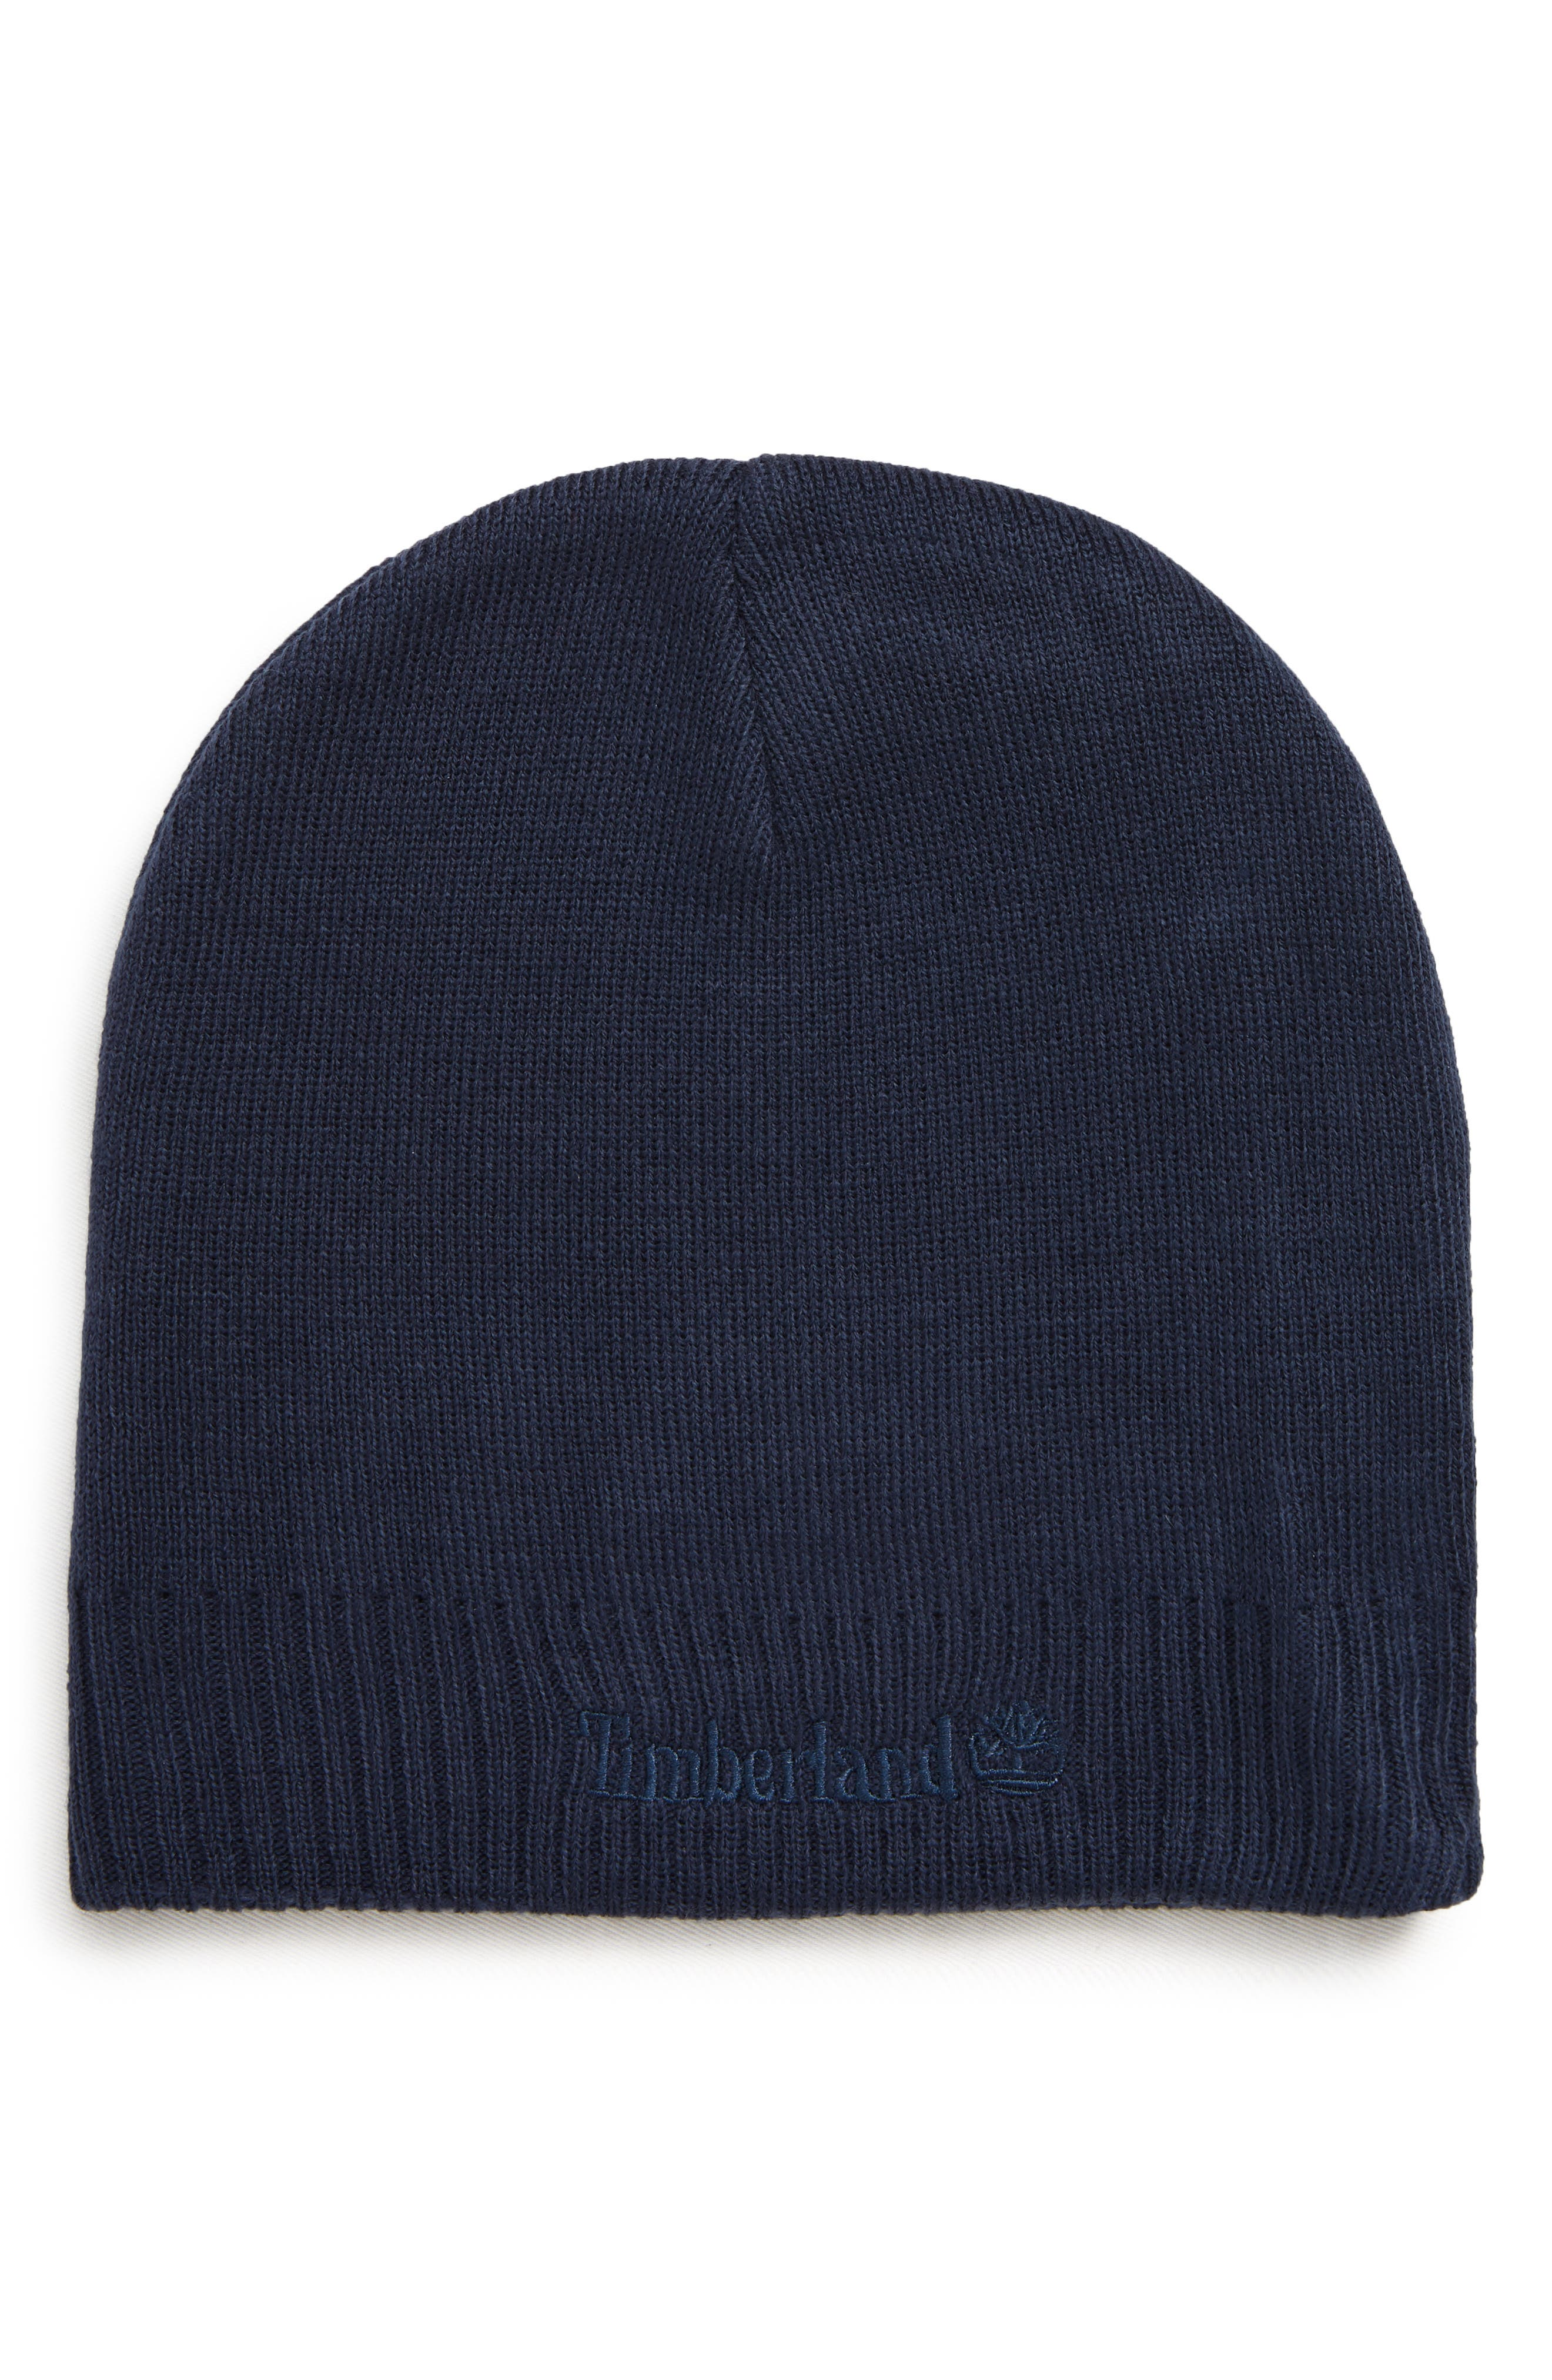 Timberland Embroidered Logo Knit Beanie - Blue